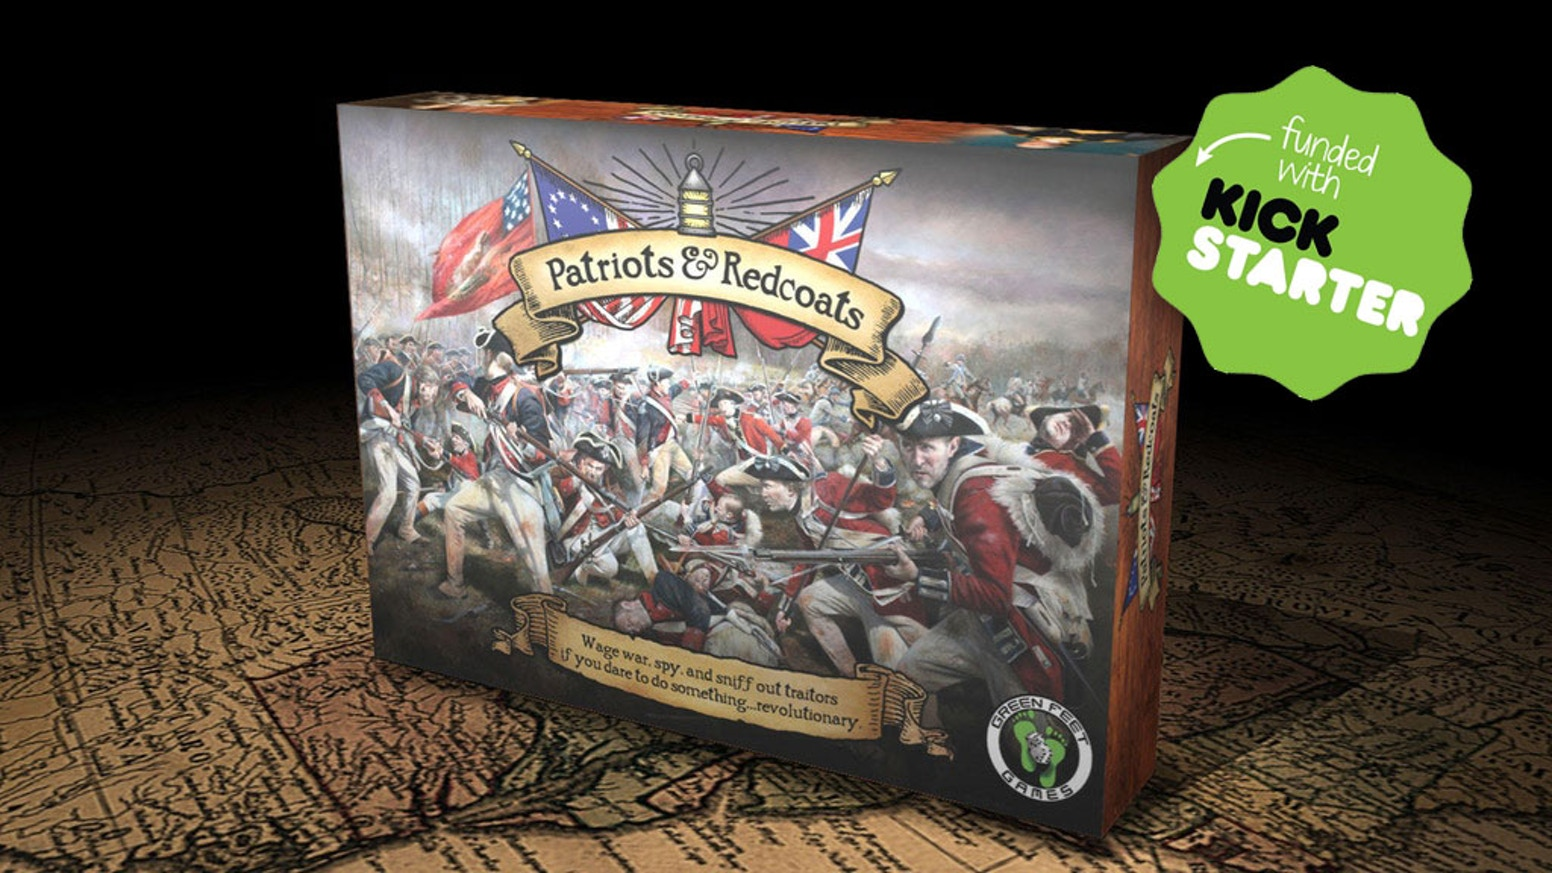 A hidden-identity card game of spies, sabotage, & skirmishes during America's War for Independence. 20-min tabletop fun for 4-10 peeps.